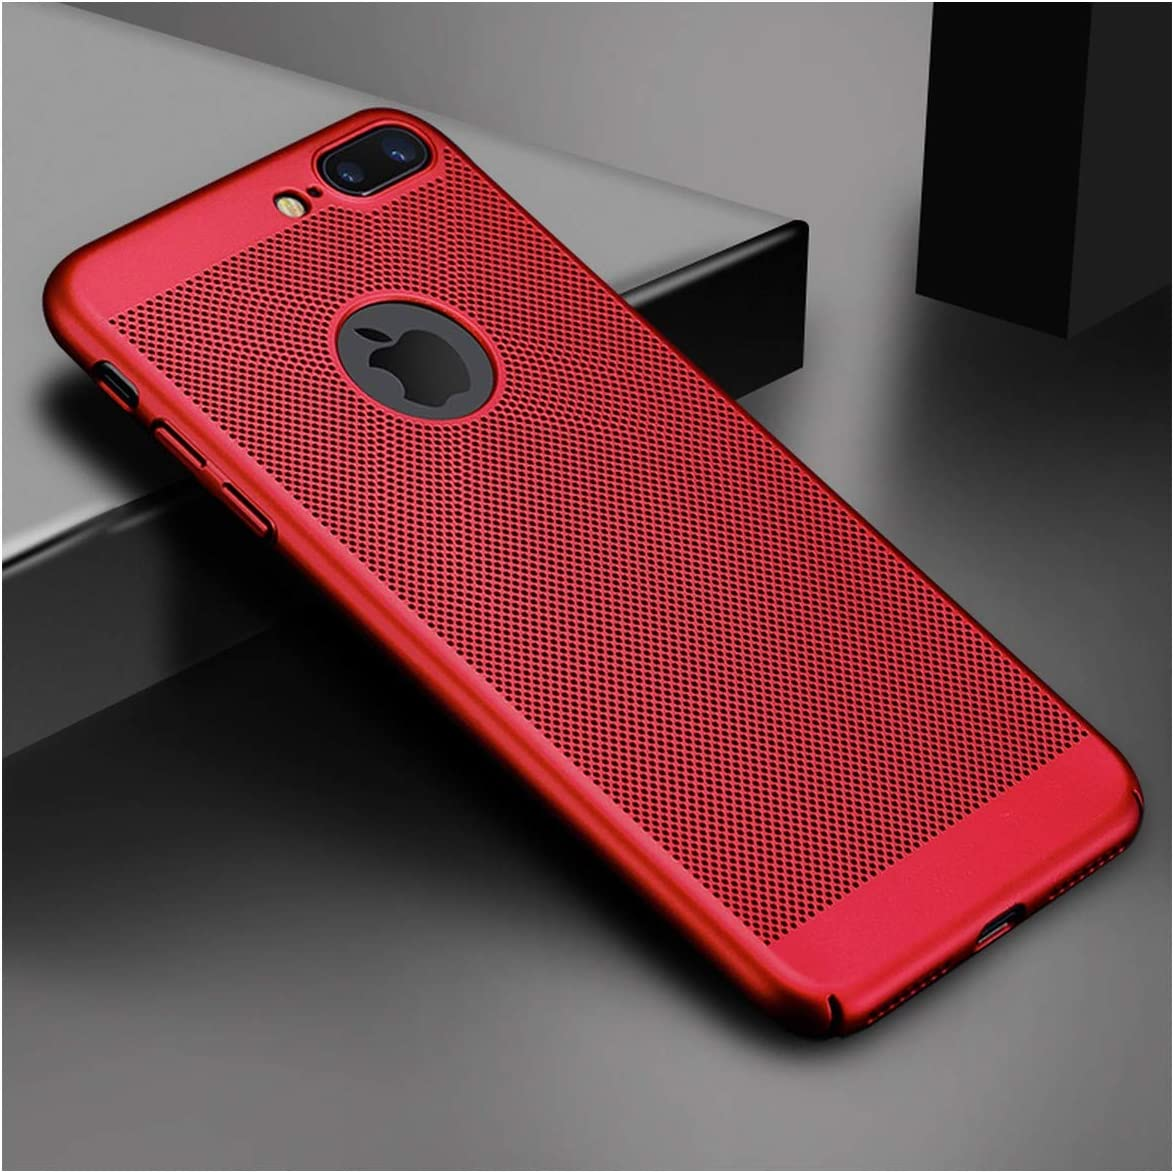 New Ultra Slim Phone Case Compatible for iPhone 6 6s 7 8 Plus Hollow Heat Dissipation Case Hard PC Compatible for iPhone 5 S SE 11 Pro Cover Coque X S MAX,Compatible for iPhone 8,Red